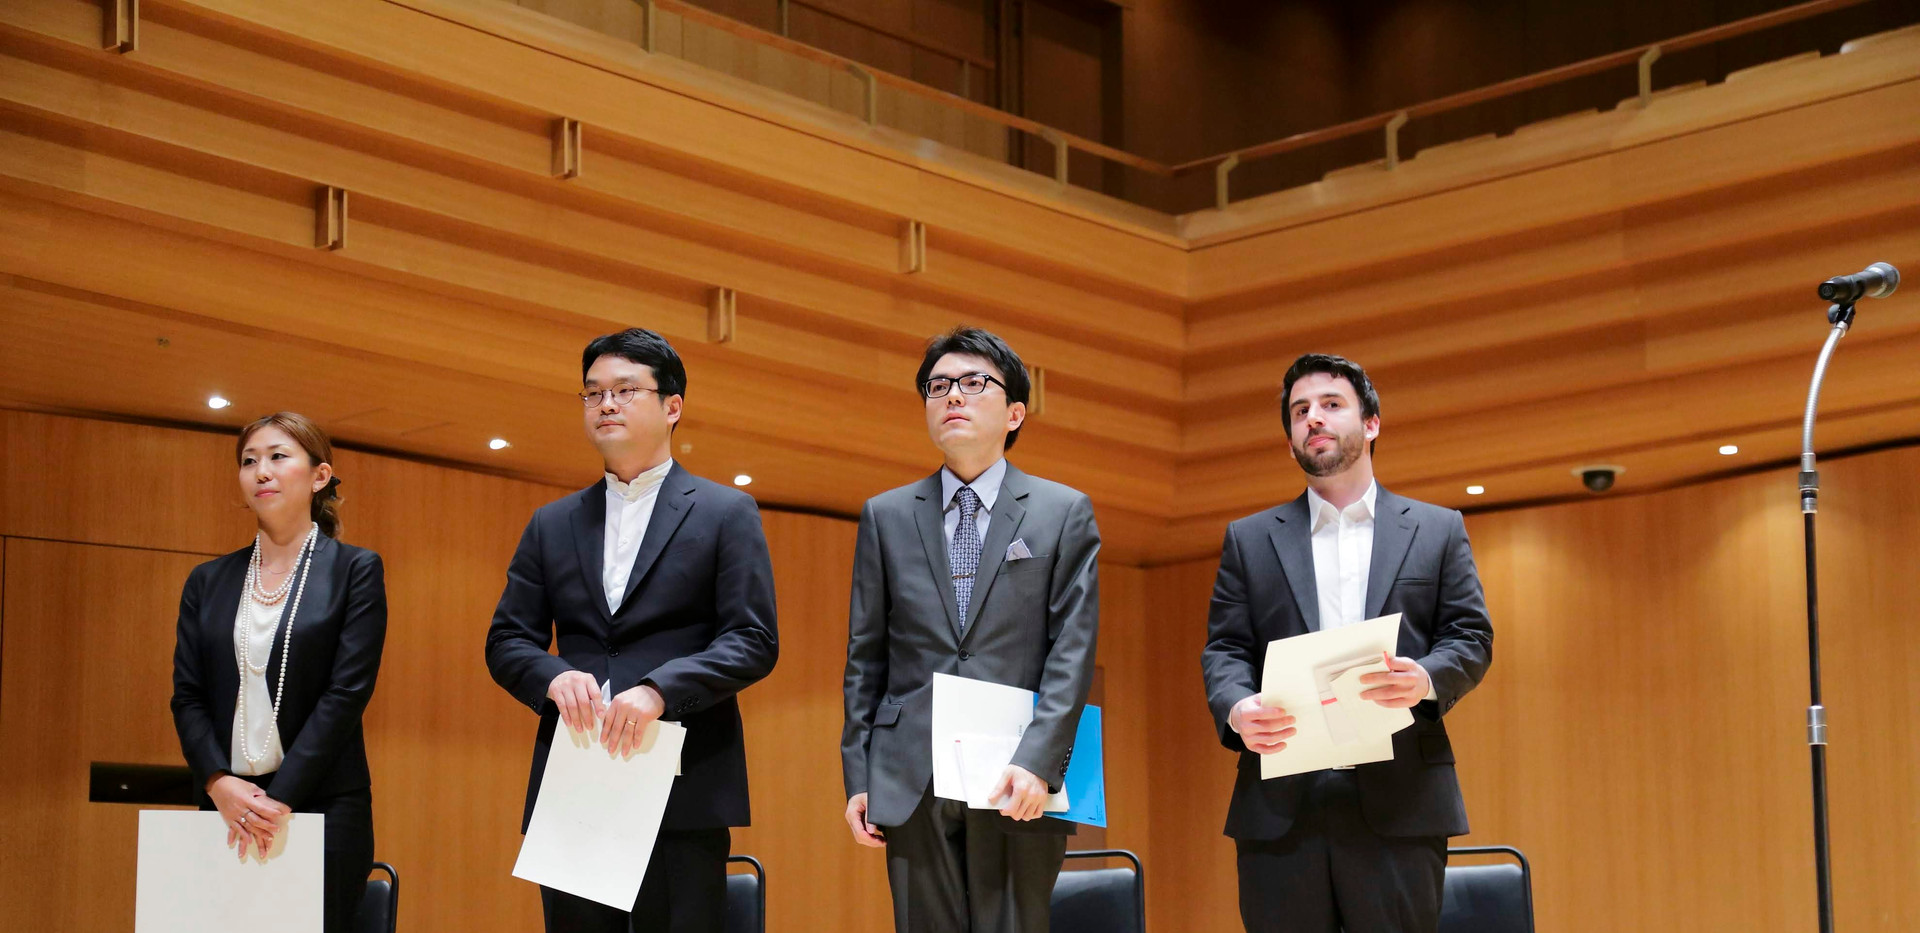 2016 Toru Takemitsu Composition Award Finalists on Stage